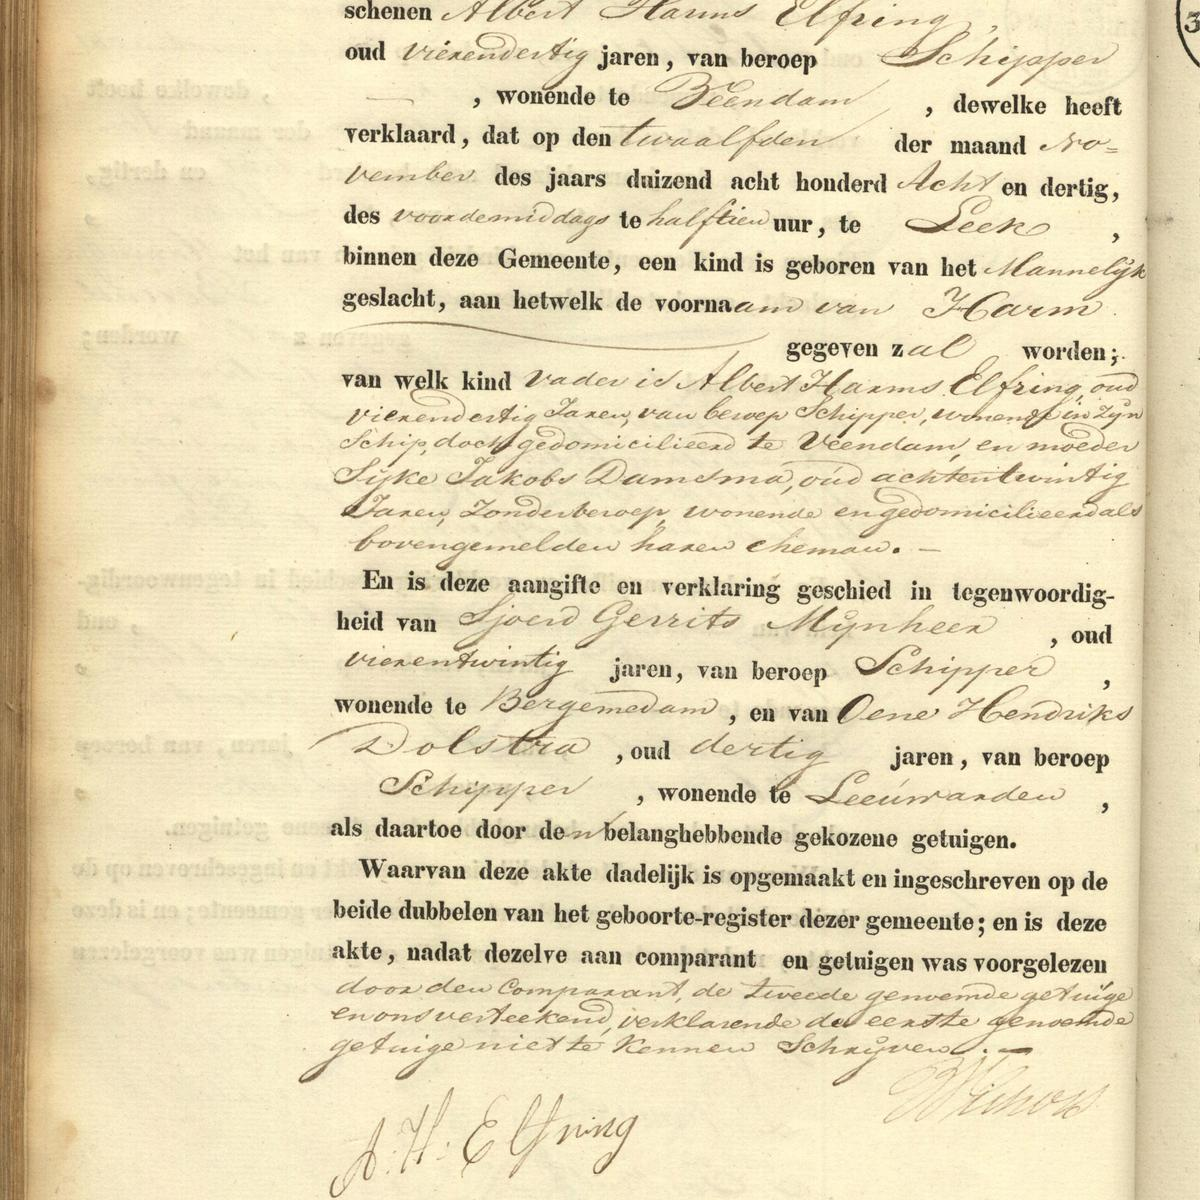 Civil registry of births, Leek, 1838, record 120